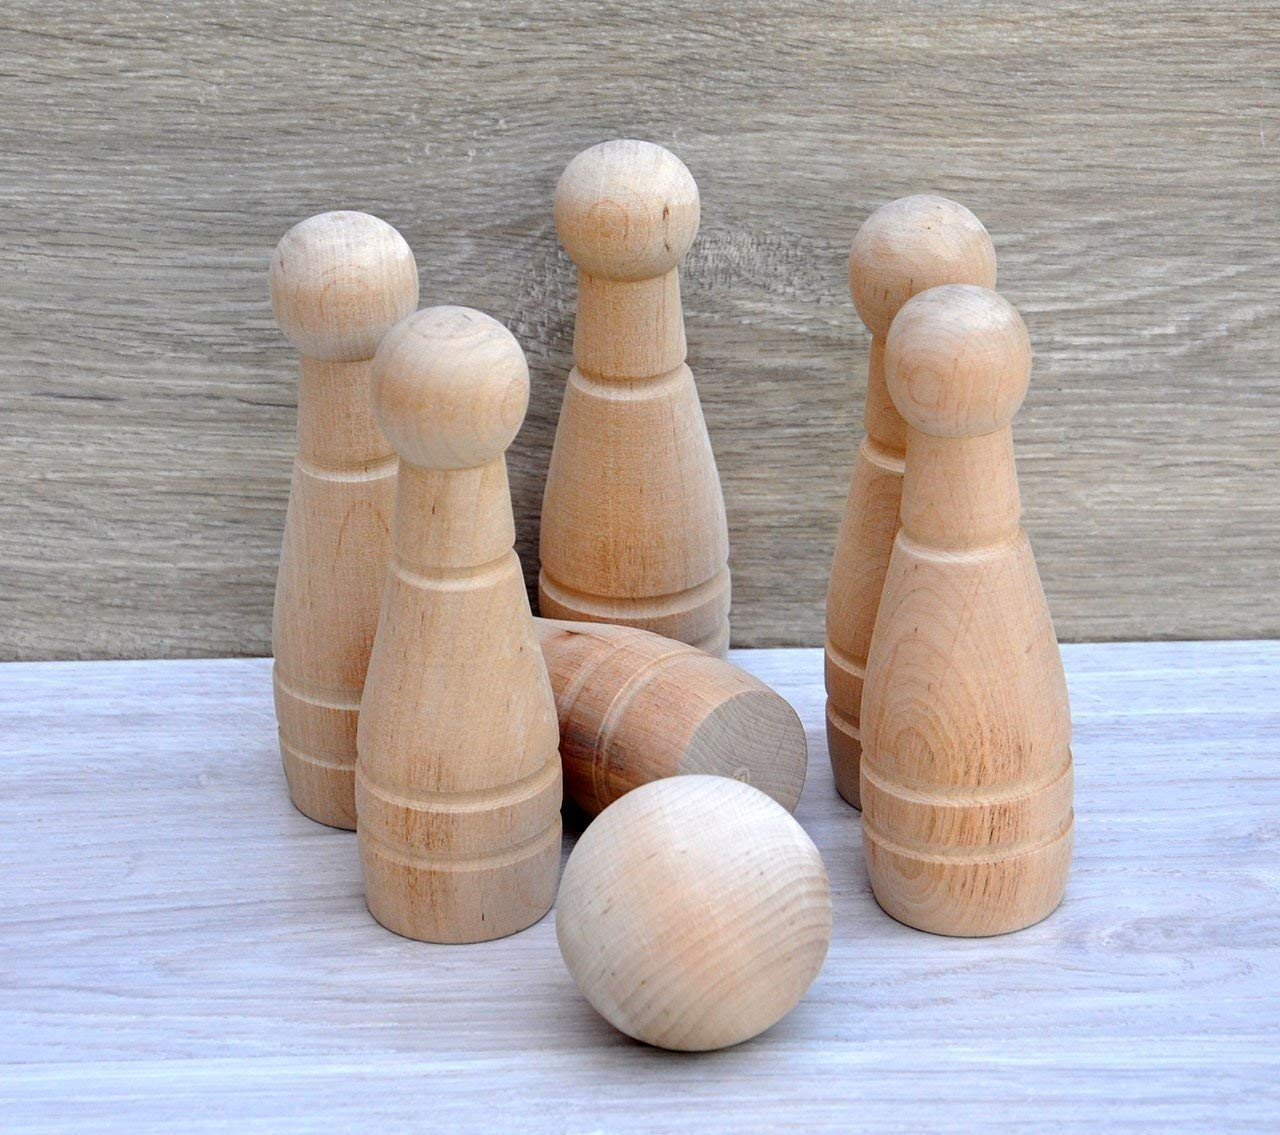 Wood bowling set Wood bowling pins and balls for kids Outdoor game Wooden bowling games for kids Wooden bowling pins for children 6 years old